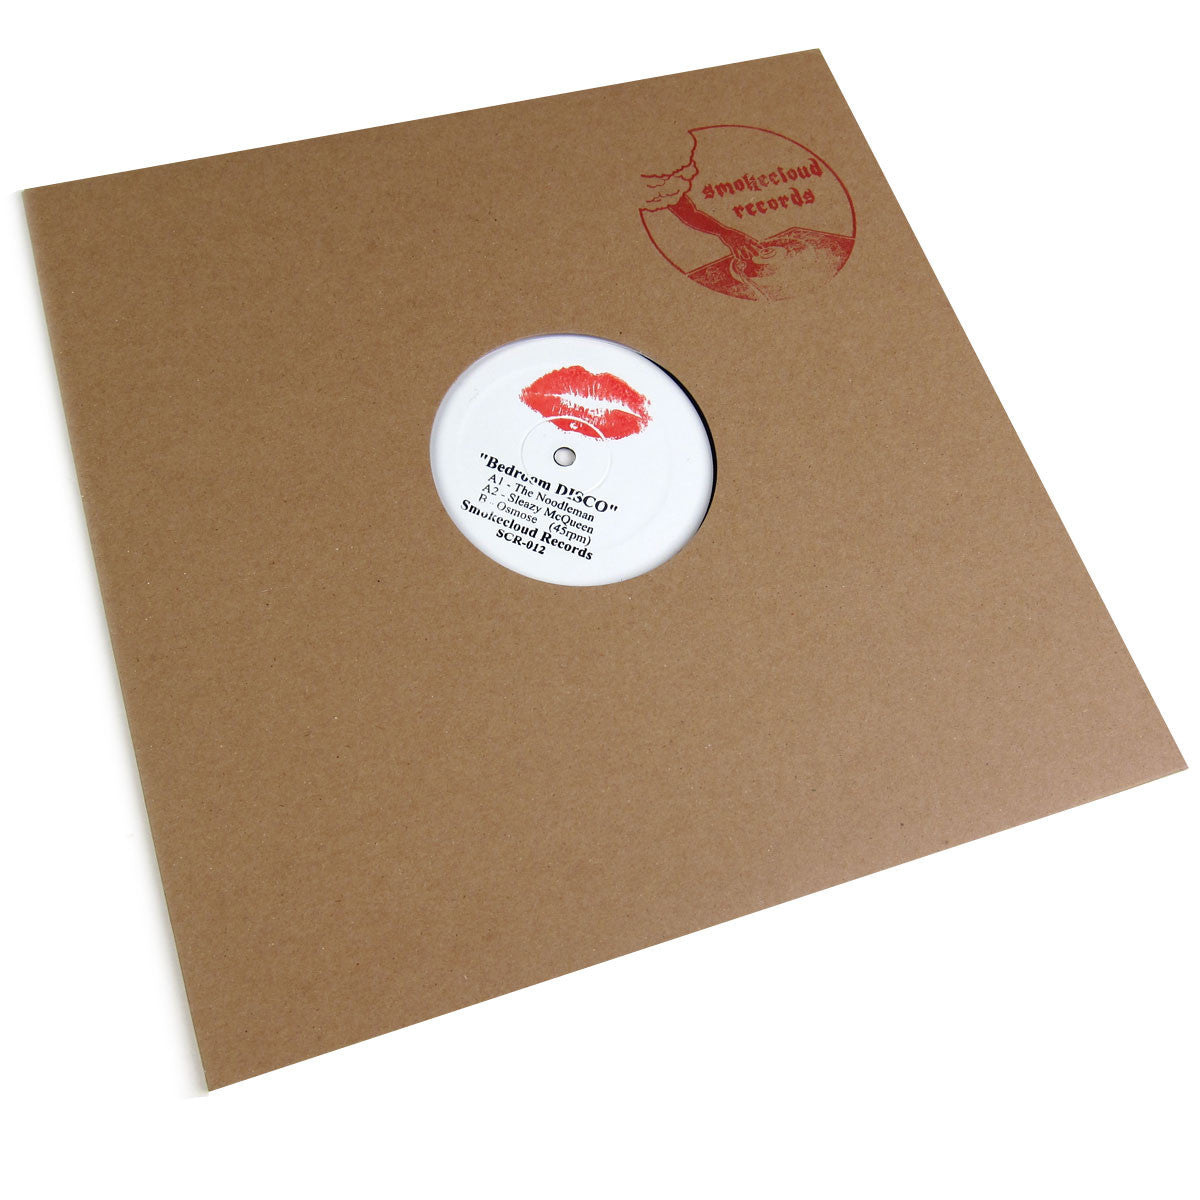 Smokecloud Records: Bedroom Disco (Sleazy McQueen, Osmose) Vinyl 12""